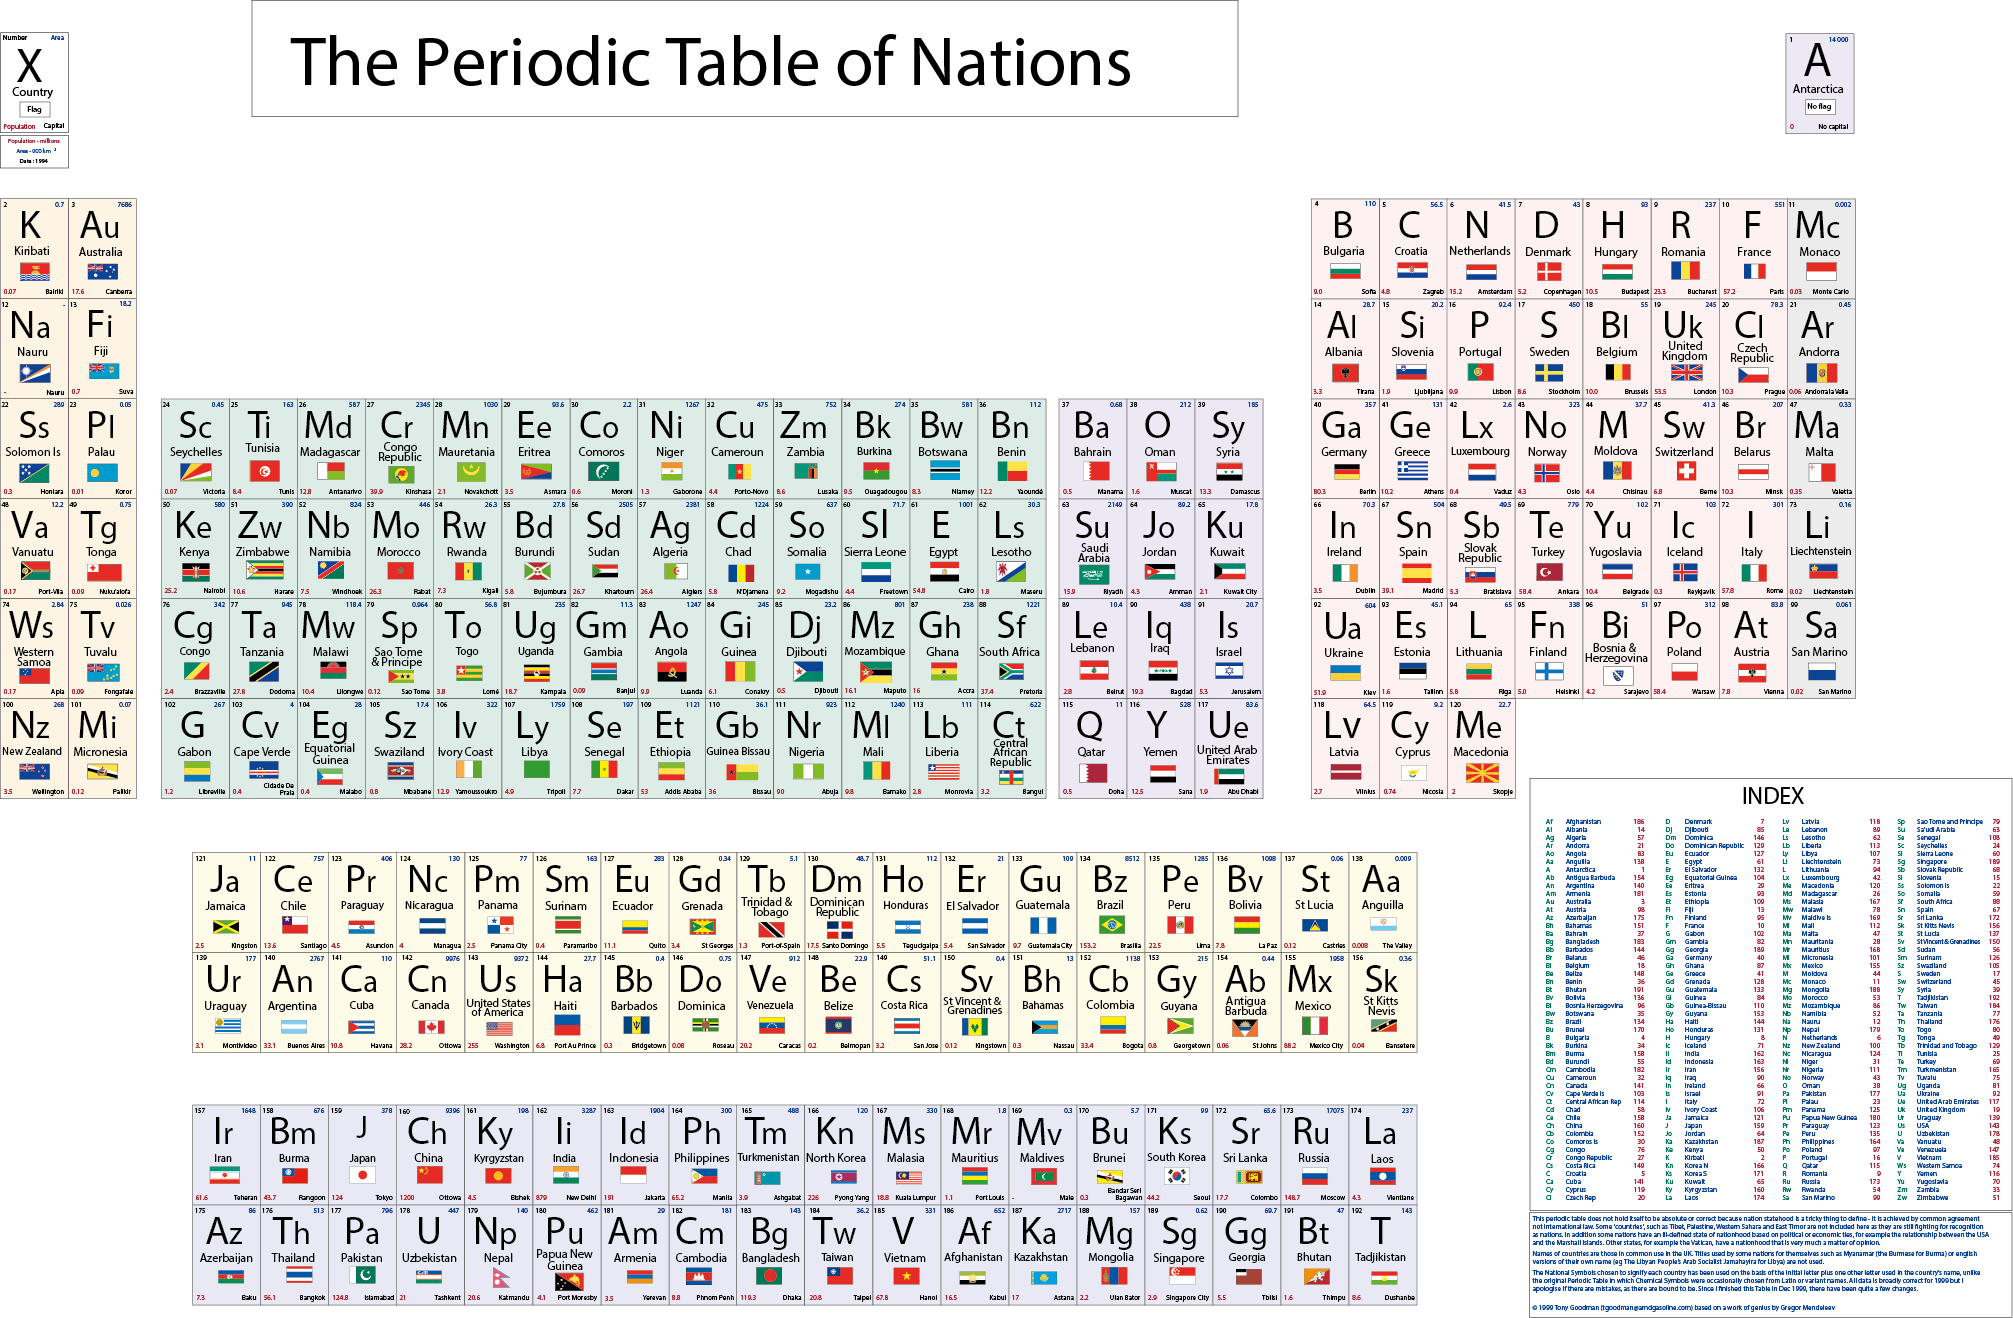 Periodic table database chemogenesis periodic table of nations gamestrikefo Images